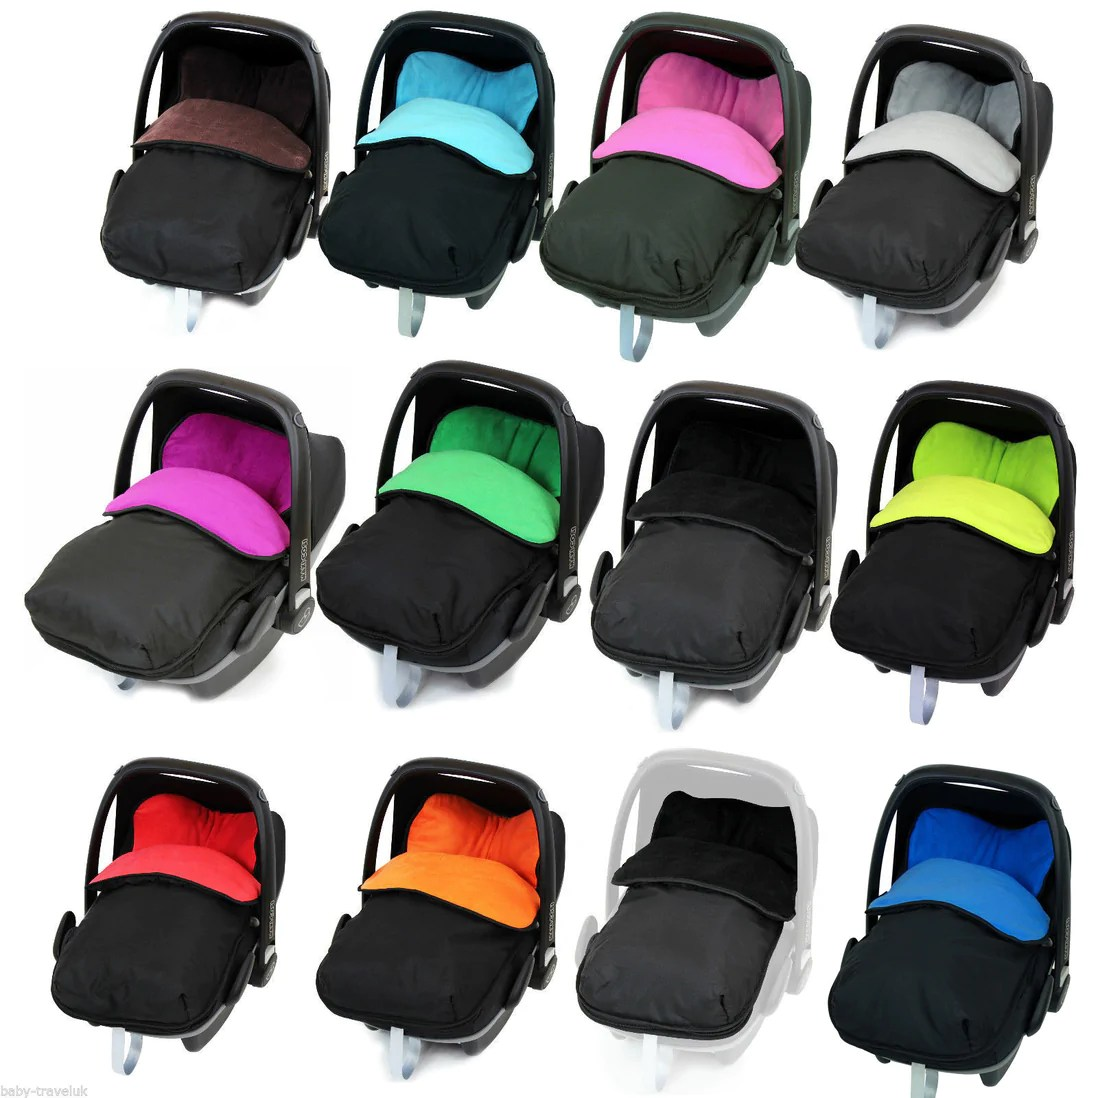 Baby Car Seat Universal Universal Car Seat Footmuff Cosy Toes Hauck Newborn Carseat Baby Boy Girl New